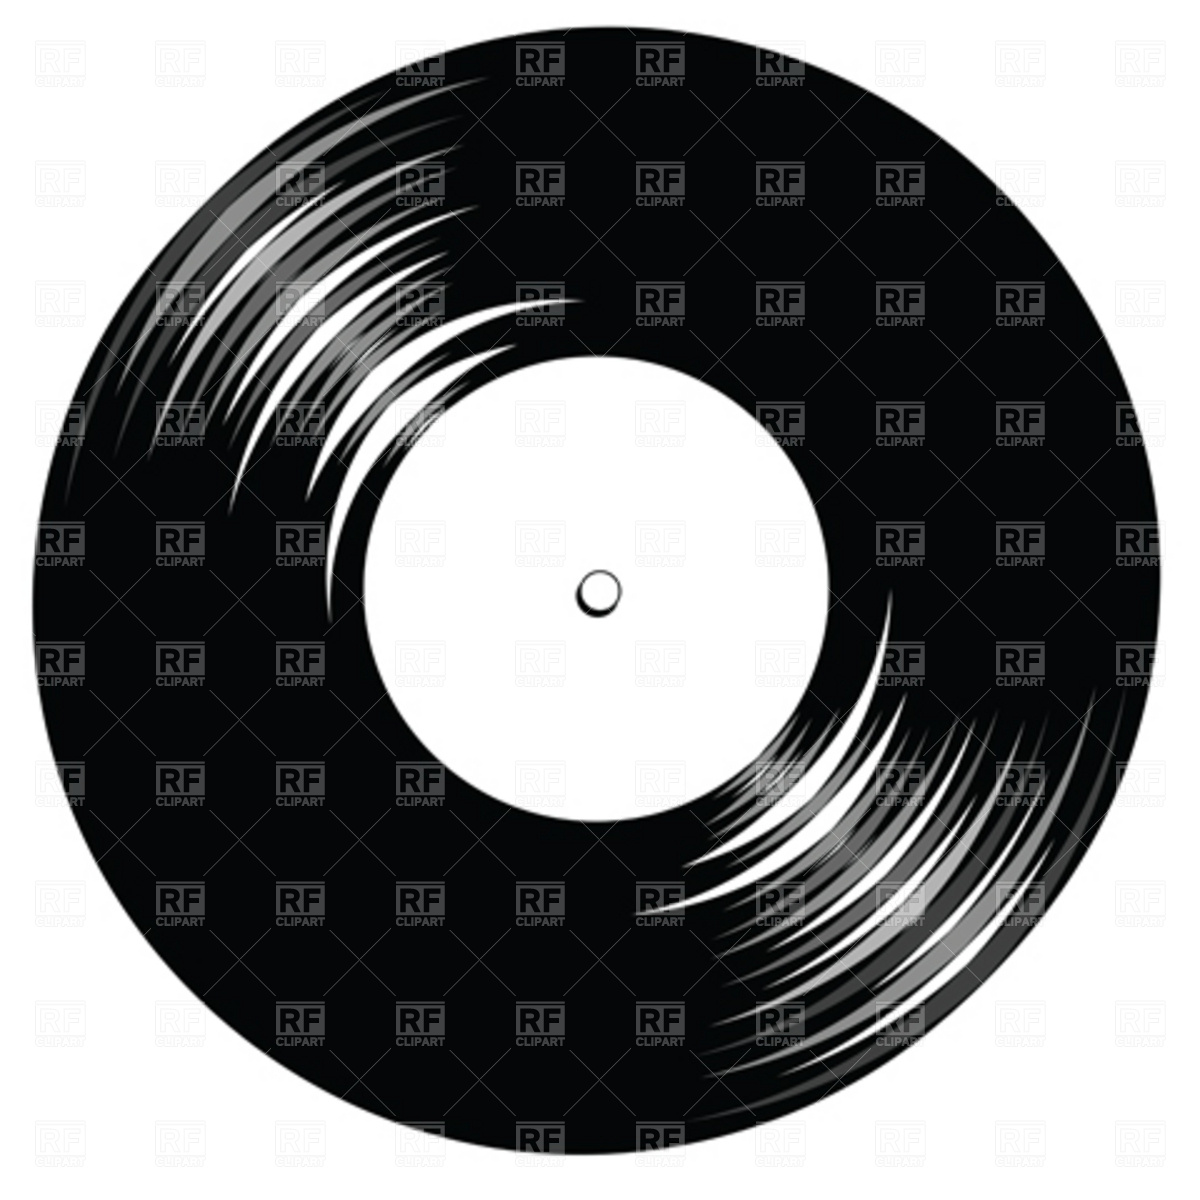 Gramophone record clipart 20 free Cliparts.